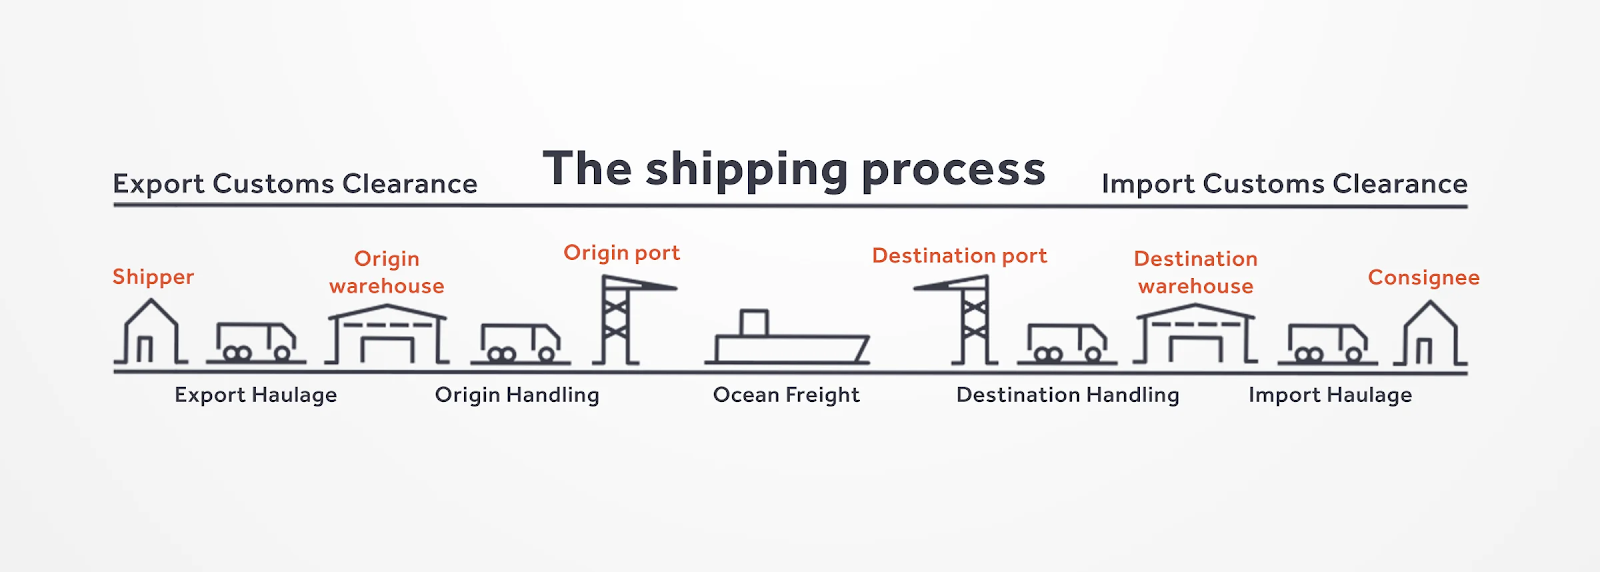 graph depicting the shipping process for export customs and import customs clearance